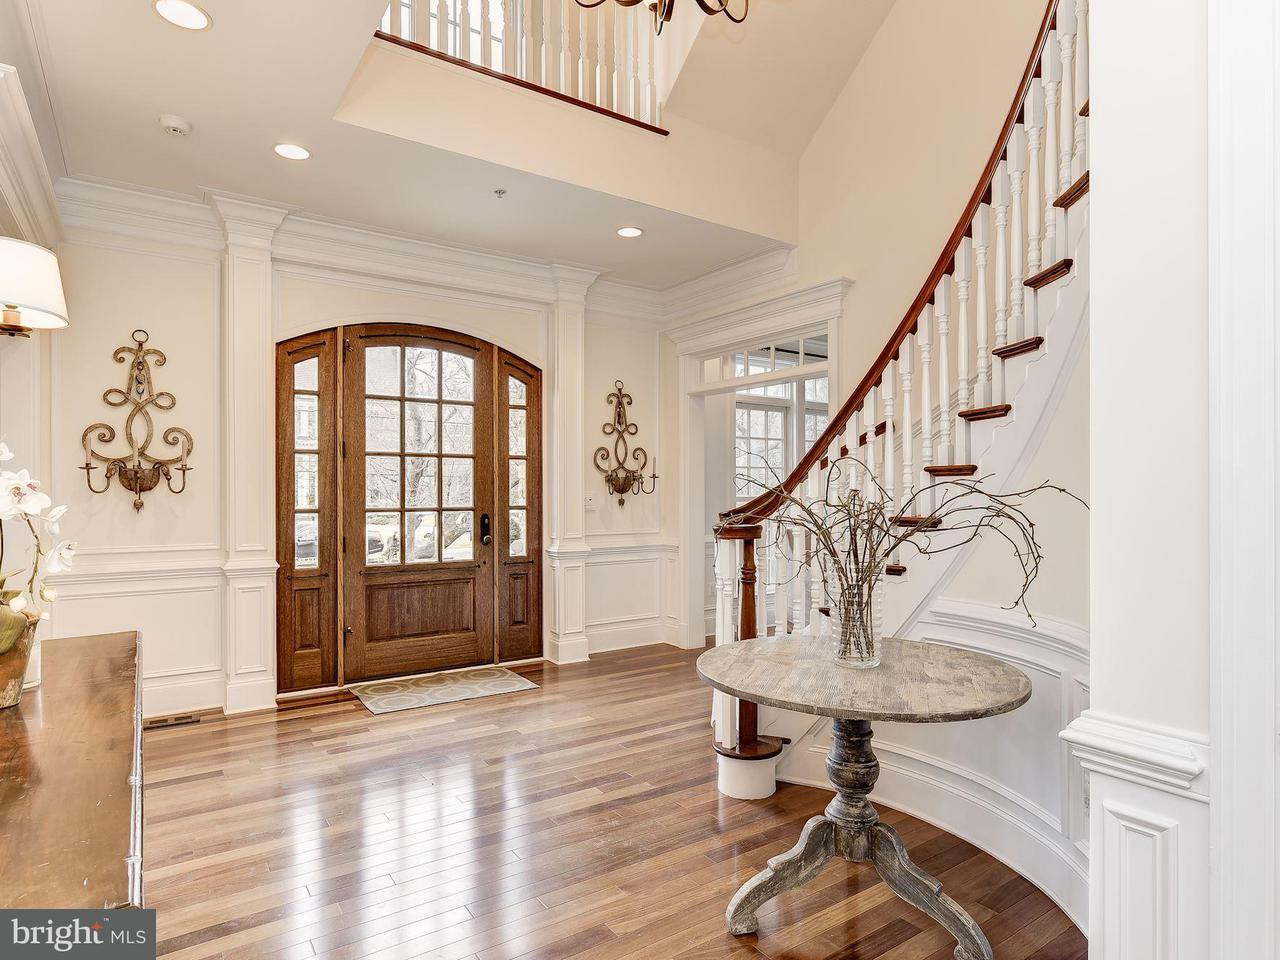 Single Family Home for Sale at 5214 Oakland Road 5214 Oakland Road Chevy Chase, Maryland 20815 United States